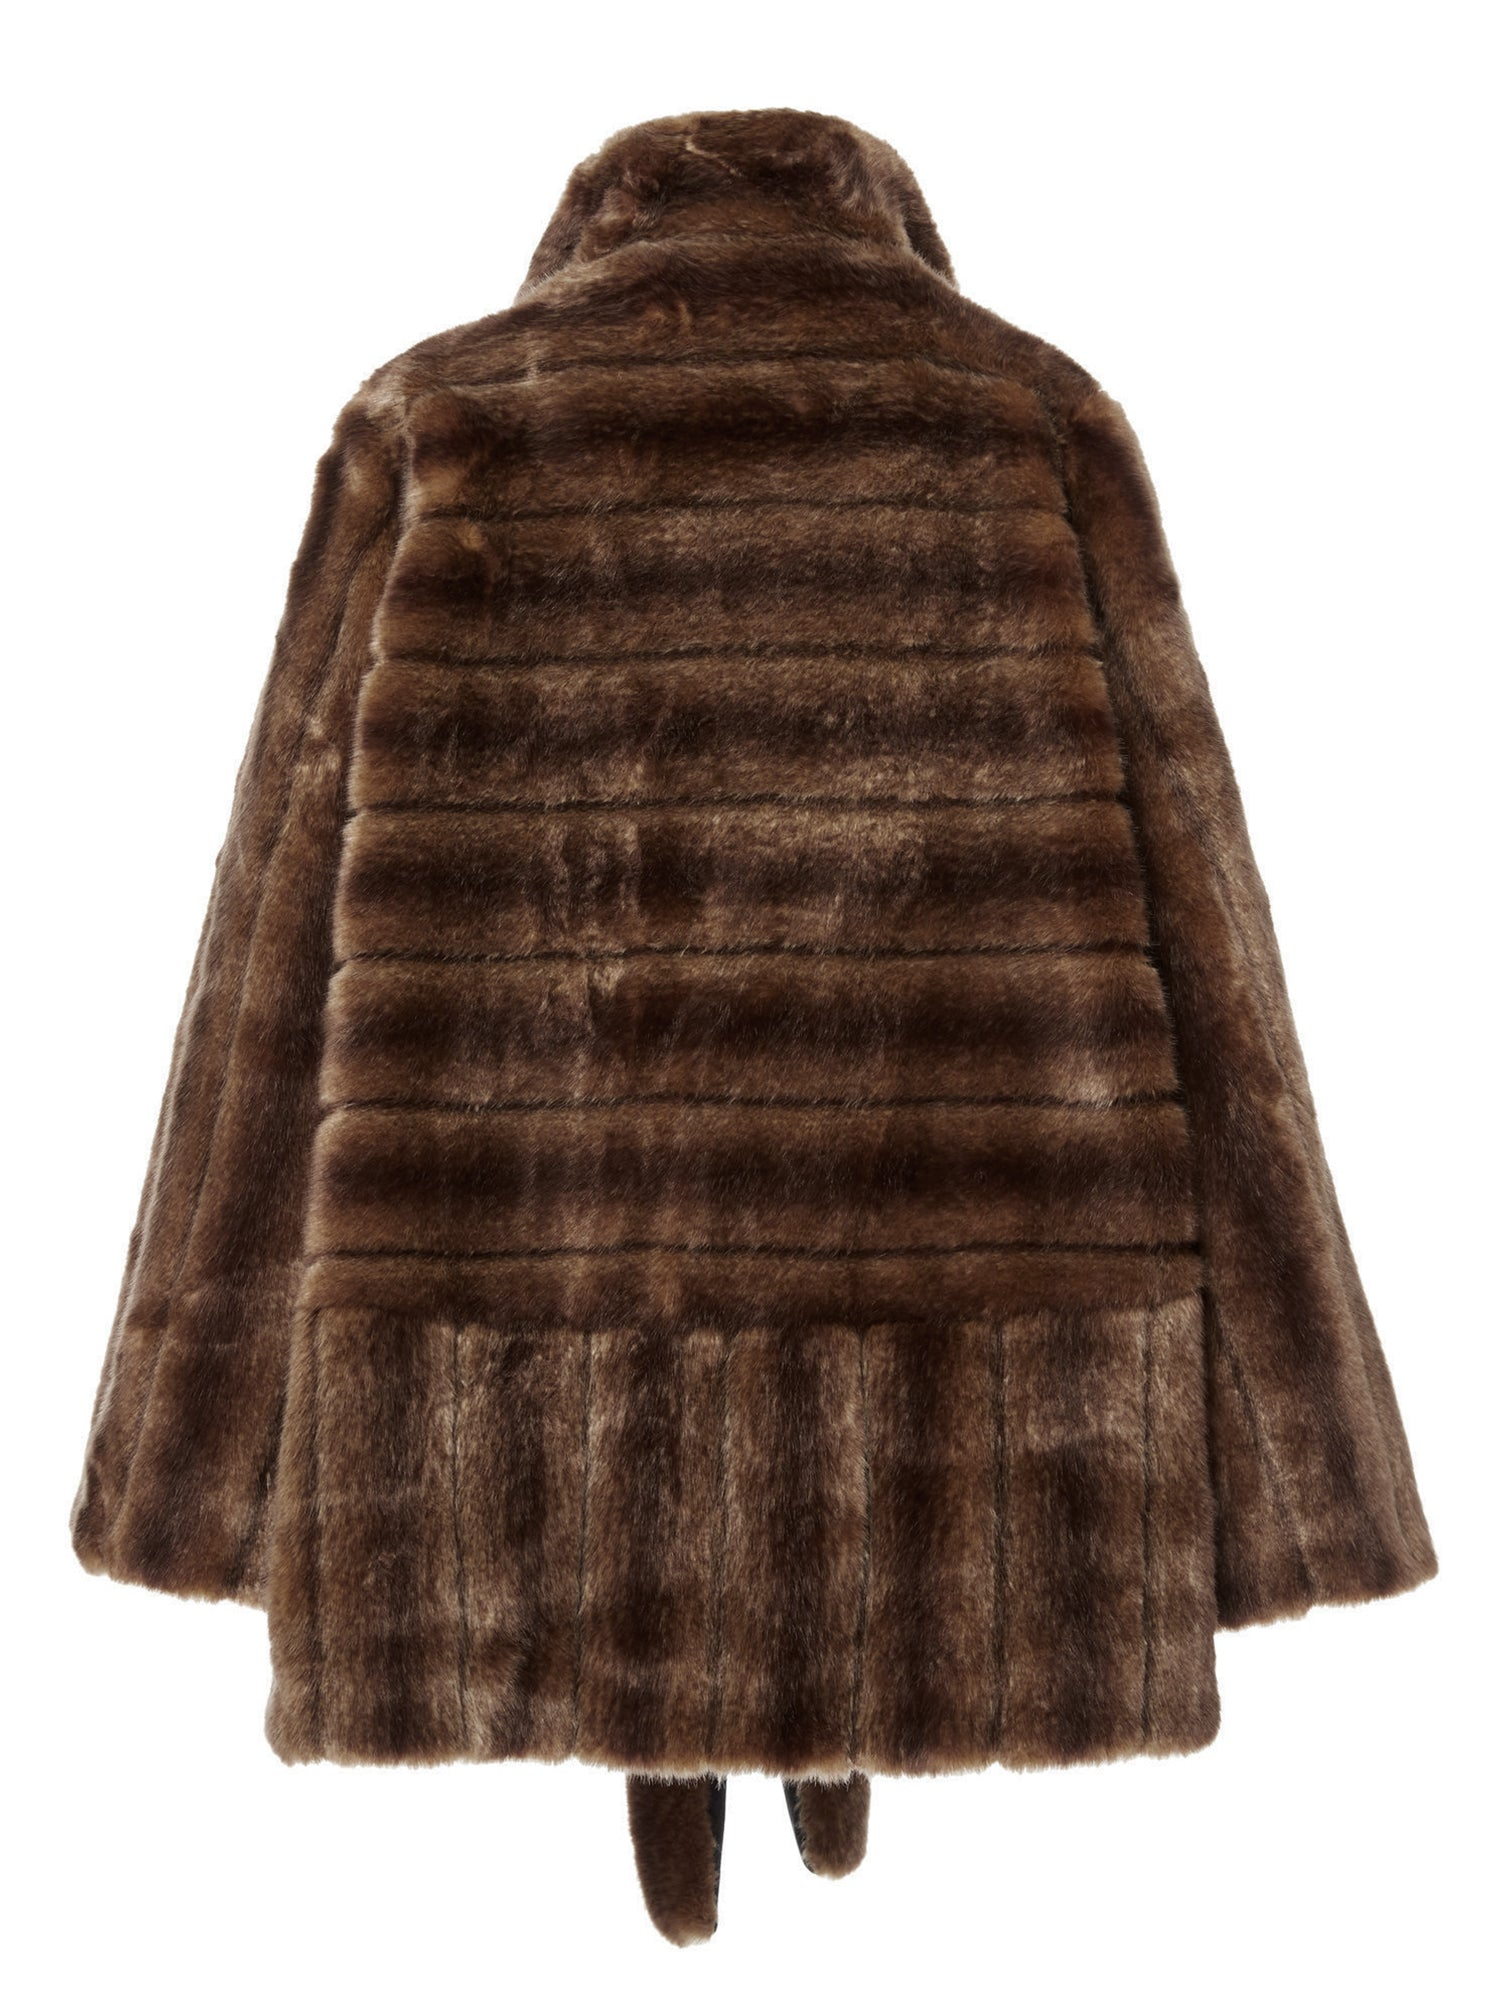 A Packshop Of Marei1998 Yoshino Cot In Classic Brown Hue. Perfect For Cold Weather, This It Is Made From Plush Faux Fur, Which Feels So Warm And Comfortable. Cut In A Slight A-Lined Shape And Fully Lined, It Is Ideal For Smooth Layering. Back View.